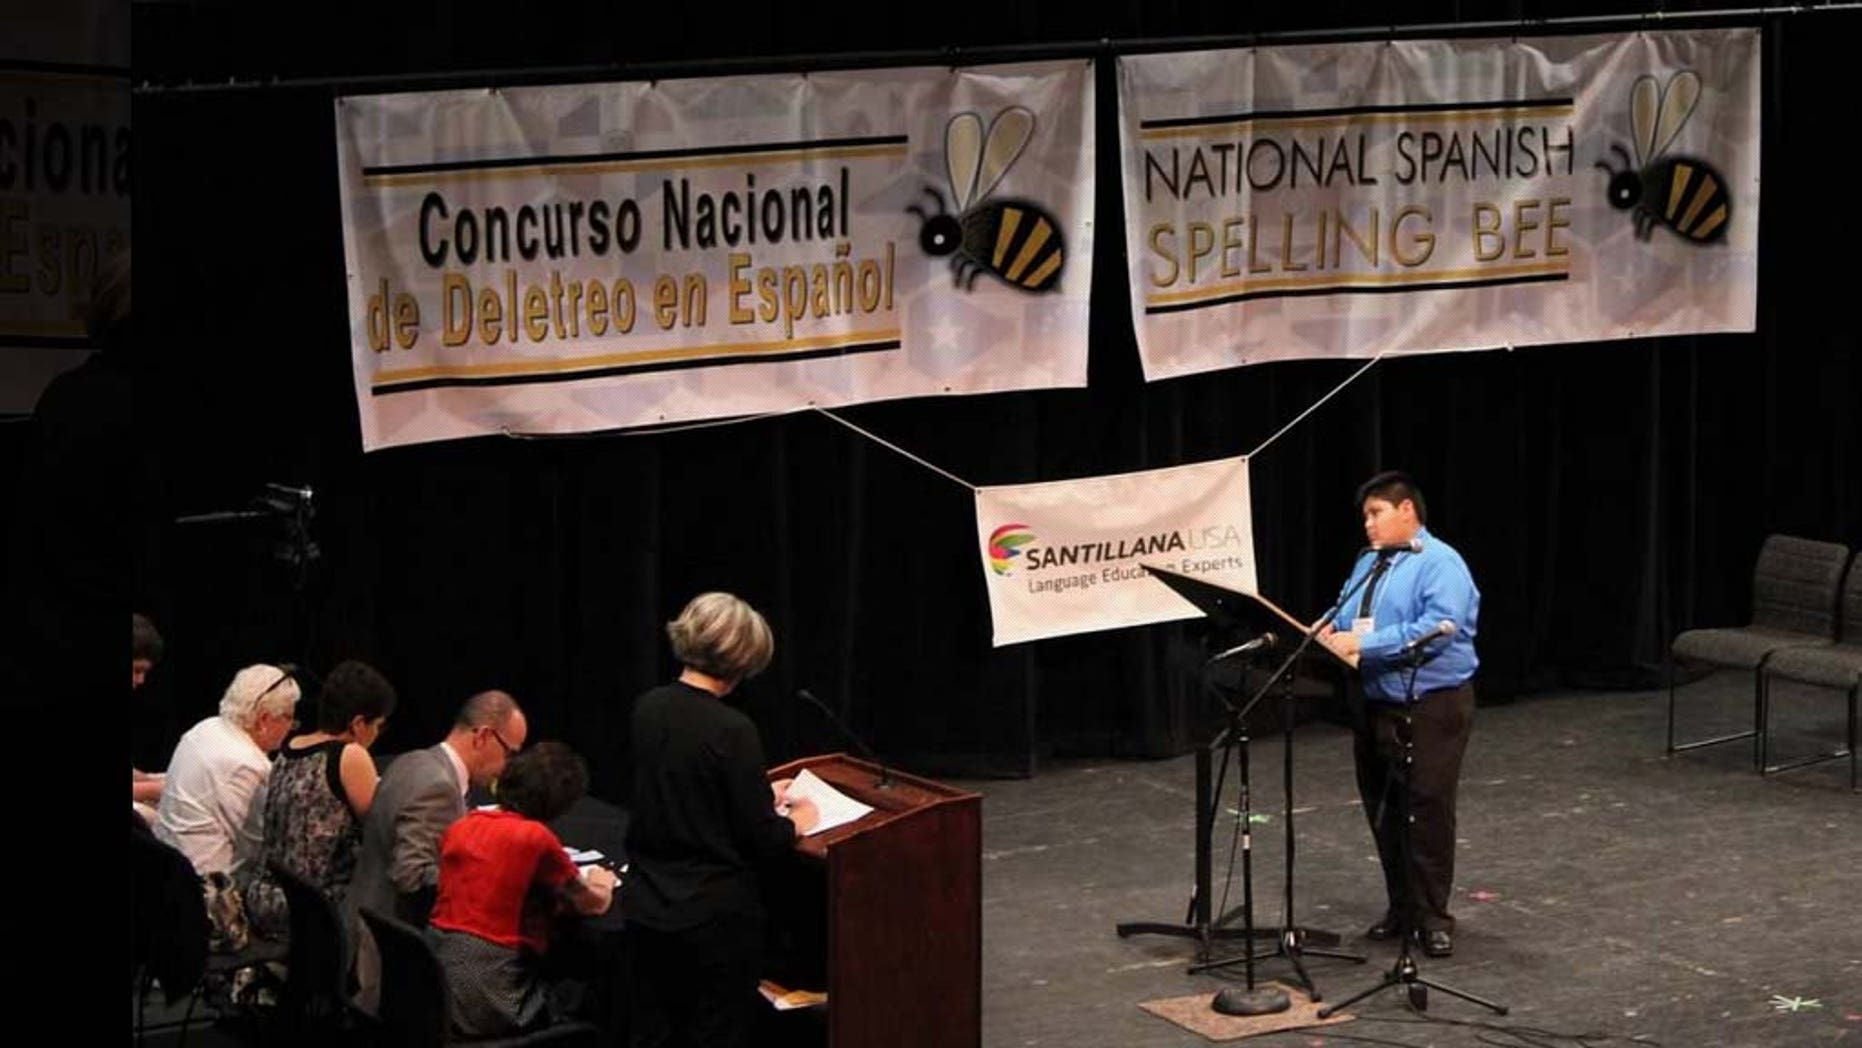 The 4th Annual National Spanish Spelling Bee in New Mexico.